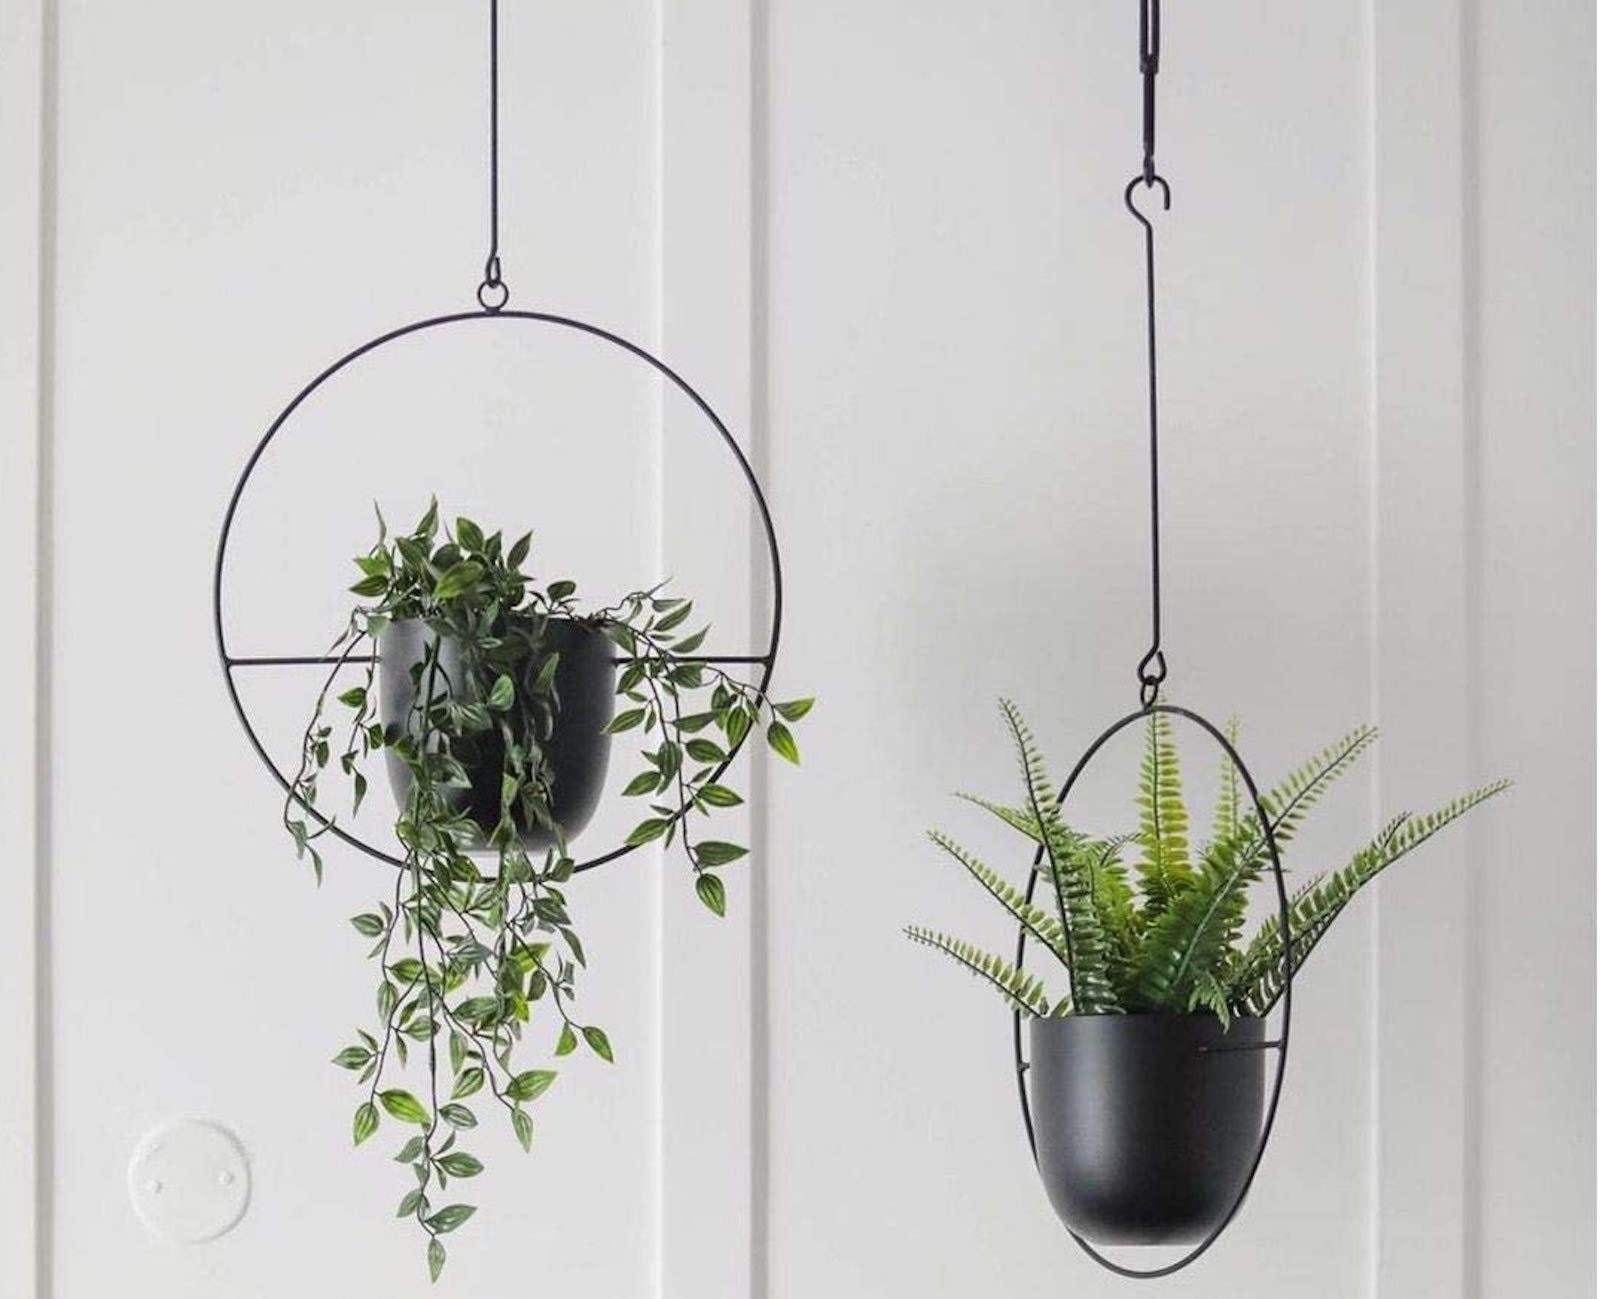 Two Abetree Planters with plants hanging from a ceiling.